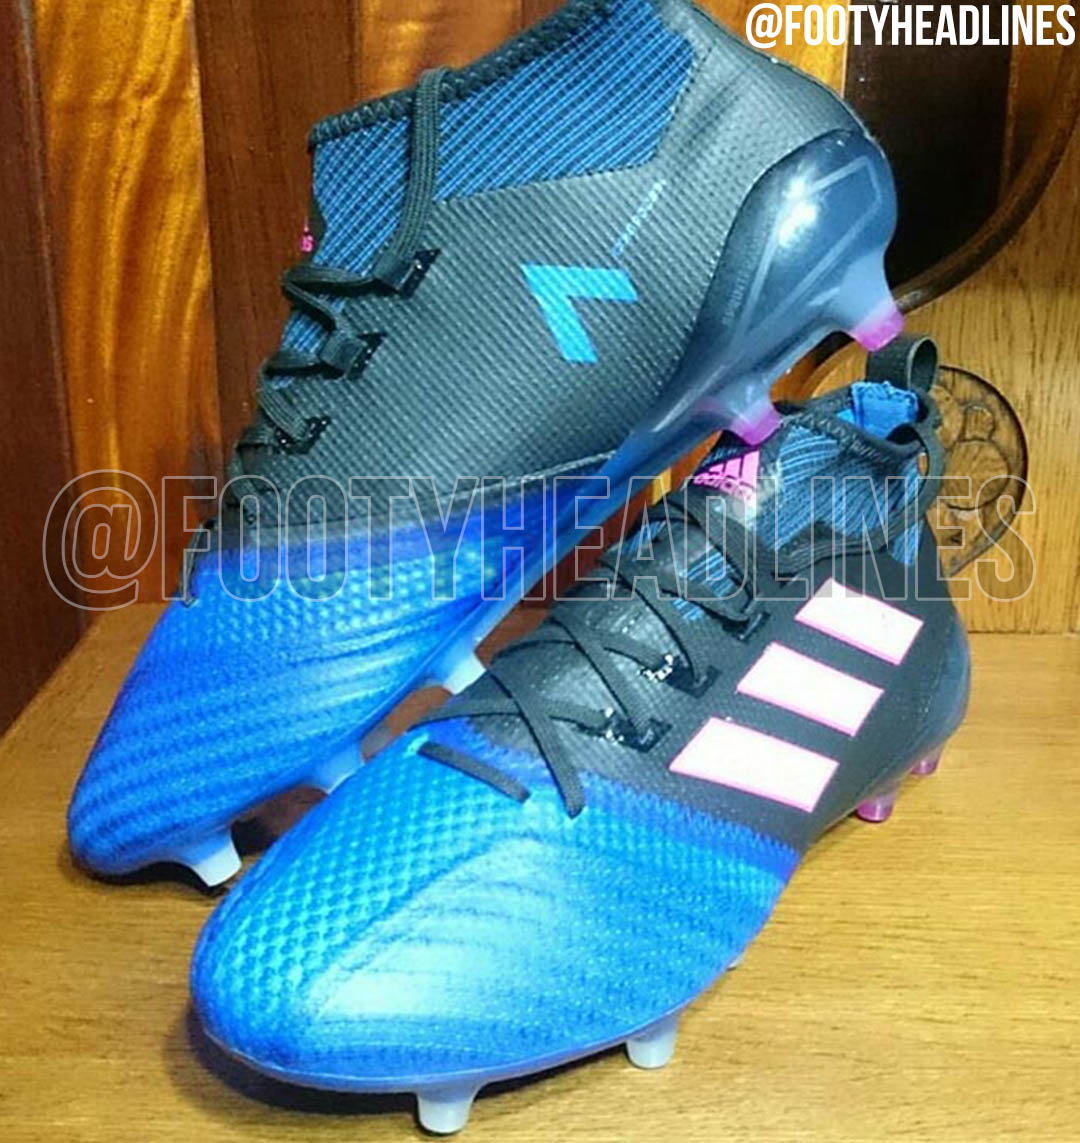 adidas ace 2017, Adidas Ace 17.1 - Blue / White / Pink